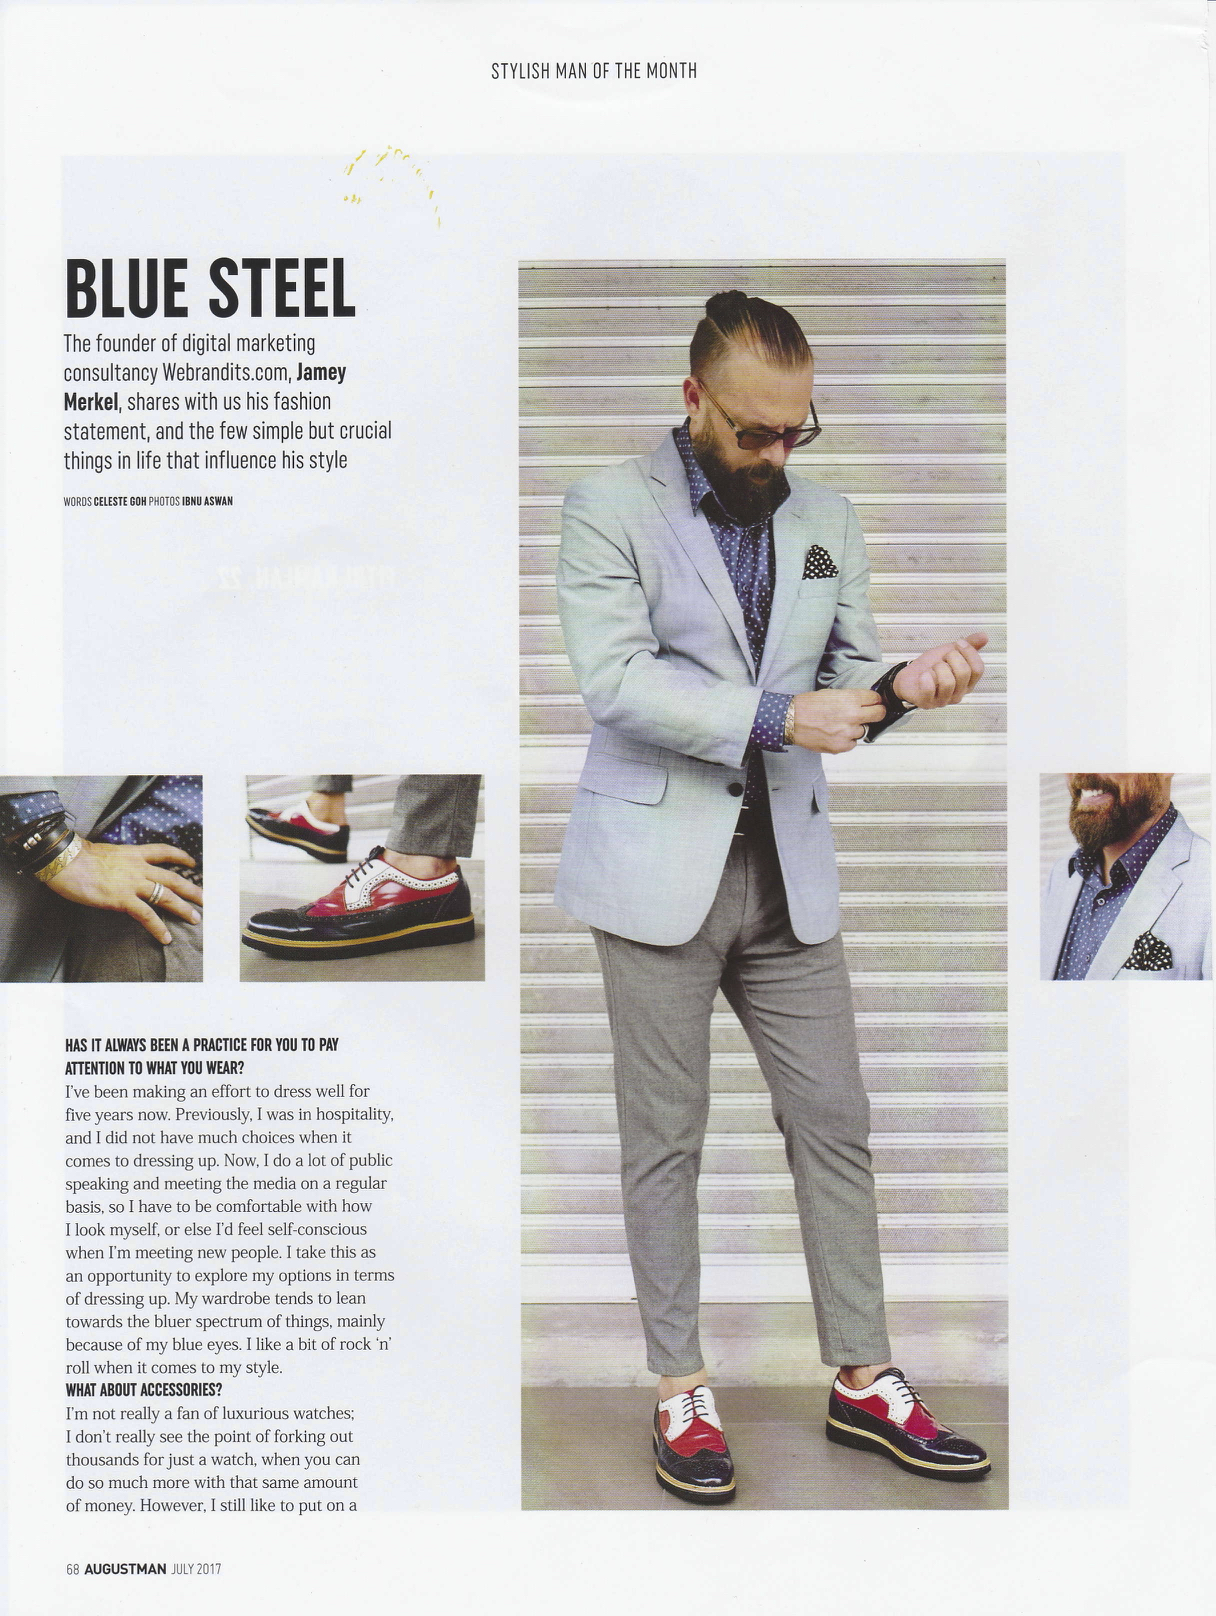 Augustman: Stylish man of the the month